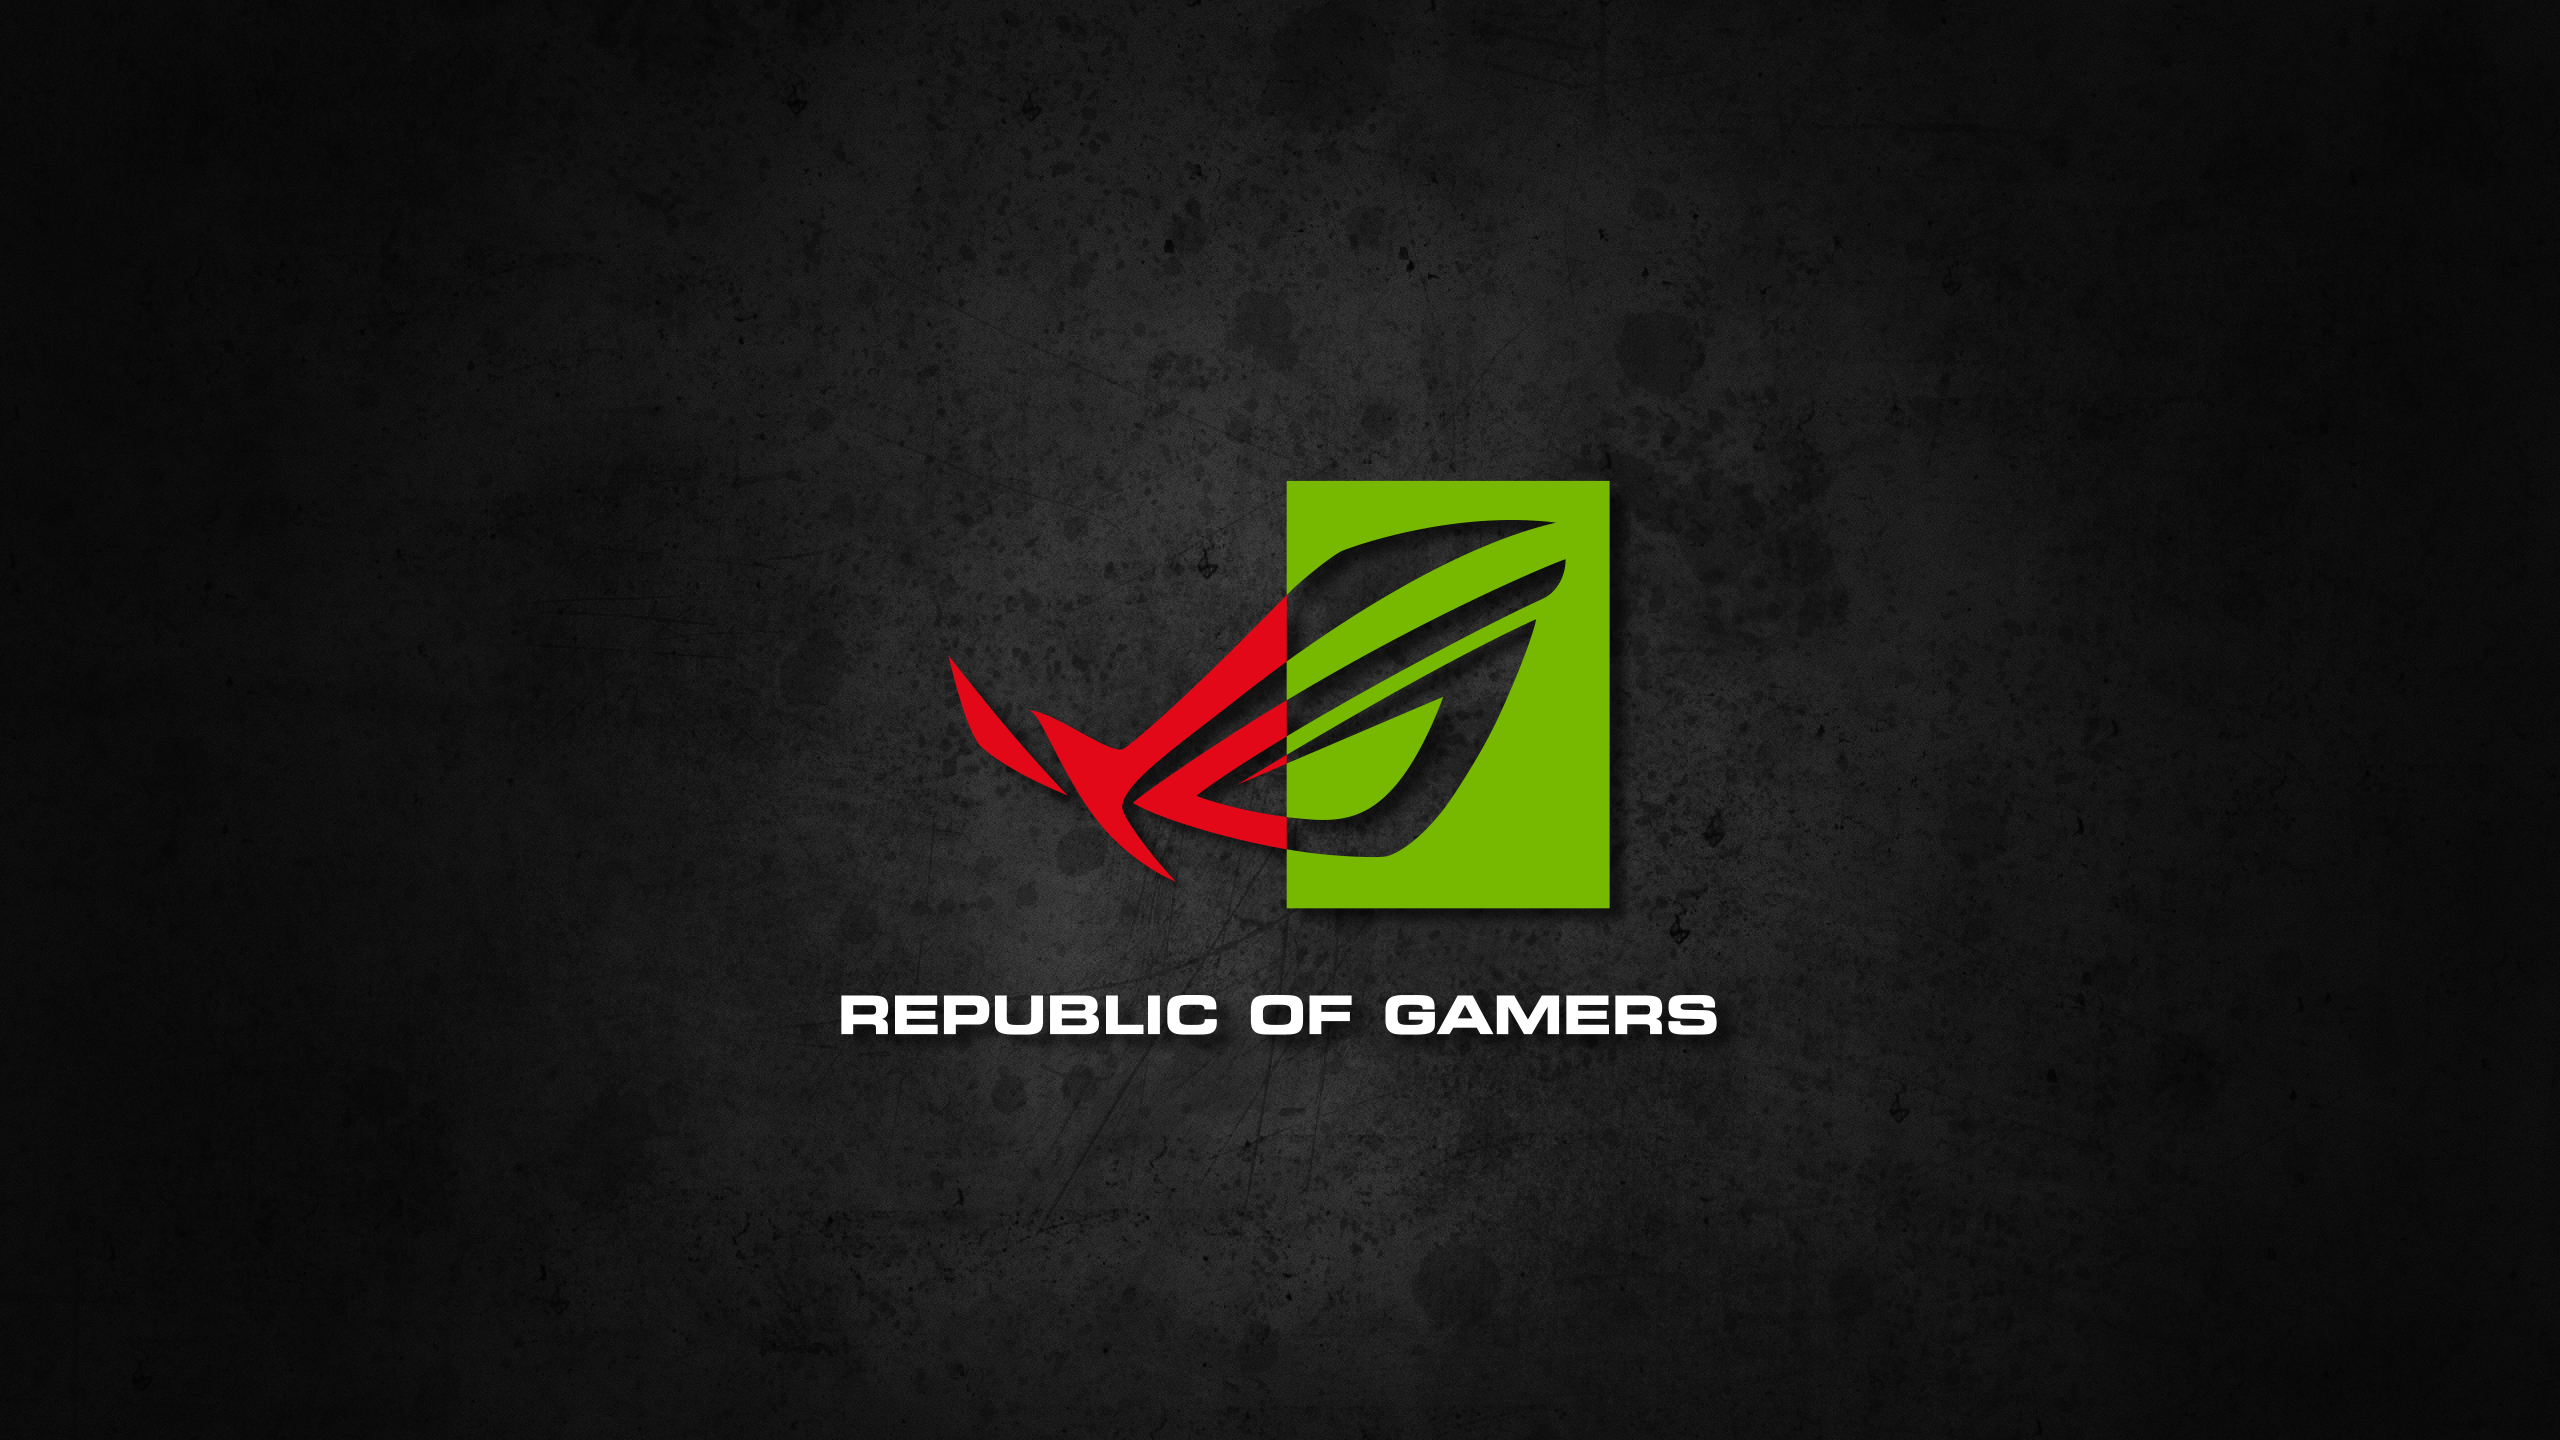 Republic Of Gamers Nvidia Wallpaper By Biosmanager On Deviantart